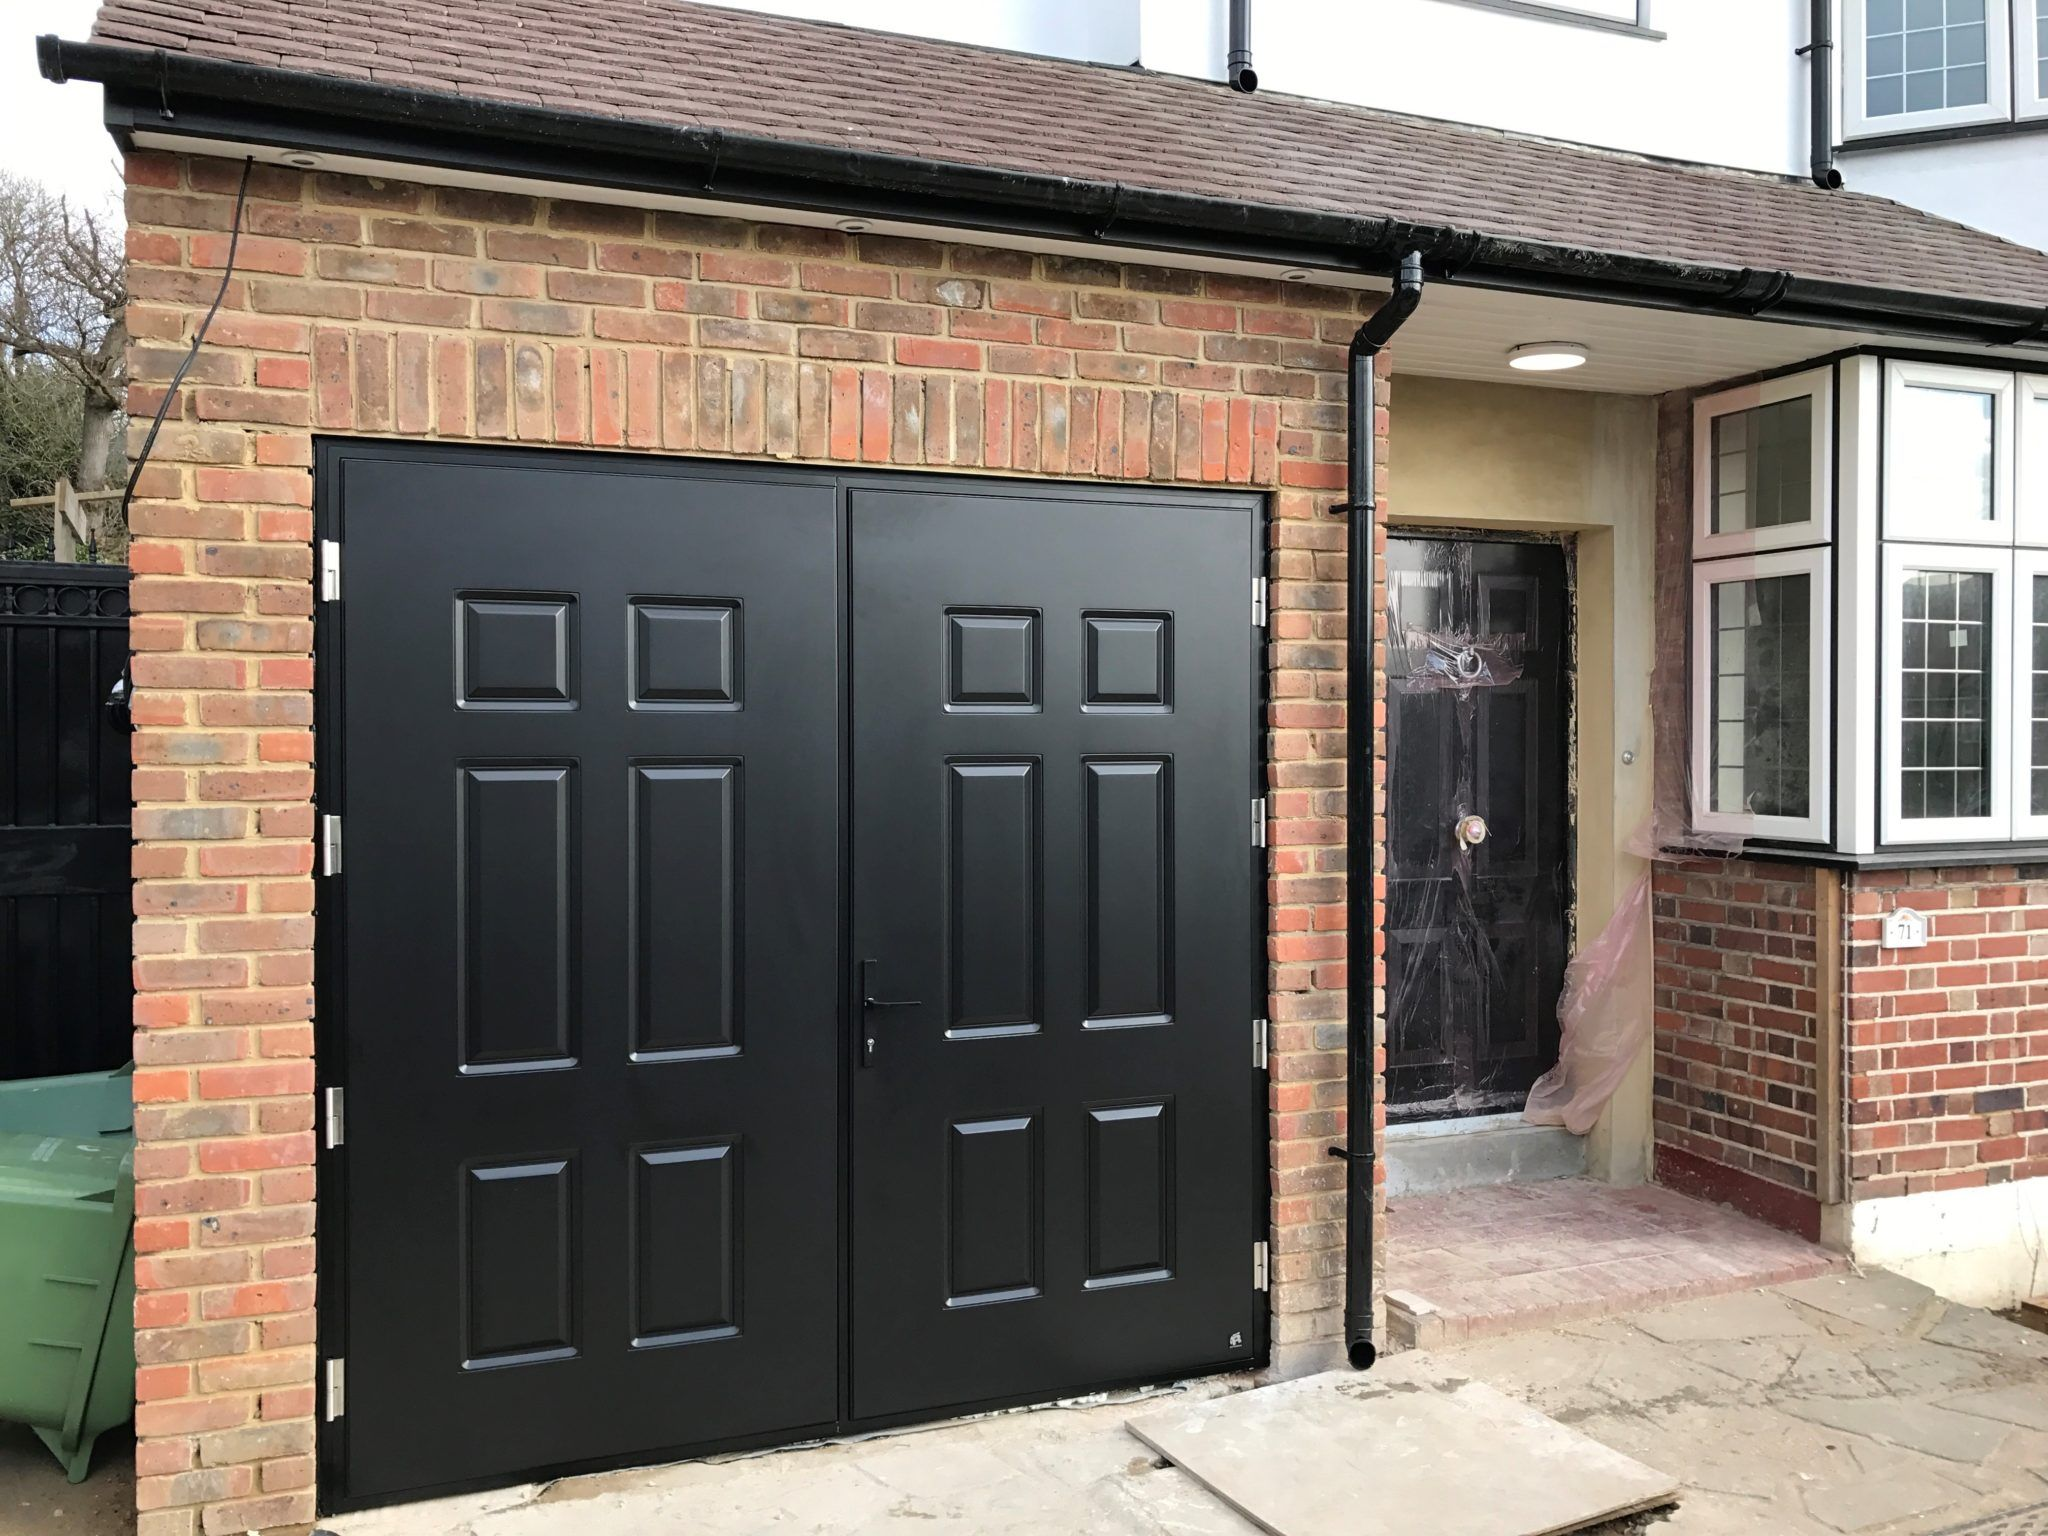 Garage doors with a personal touch Custom made garage